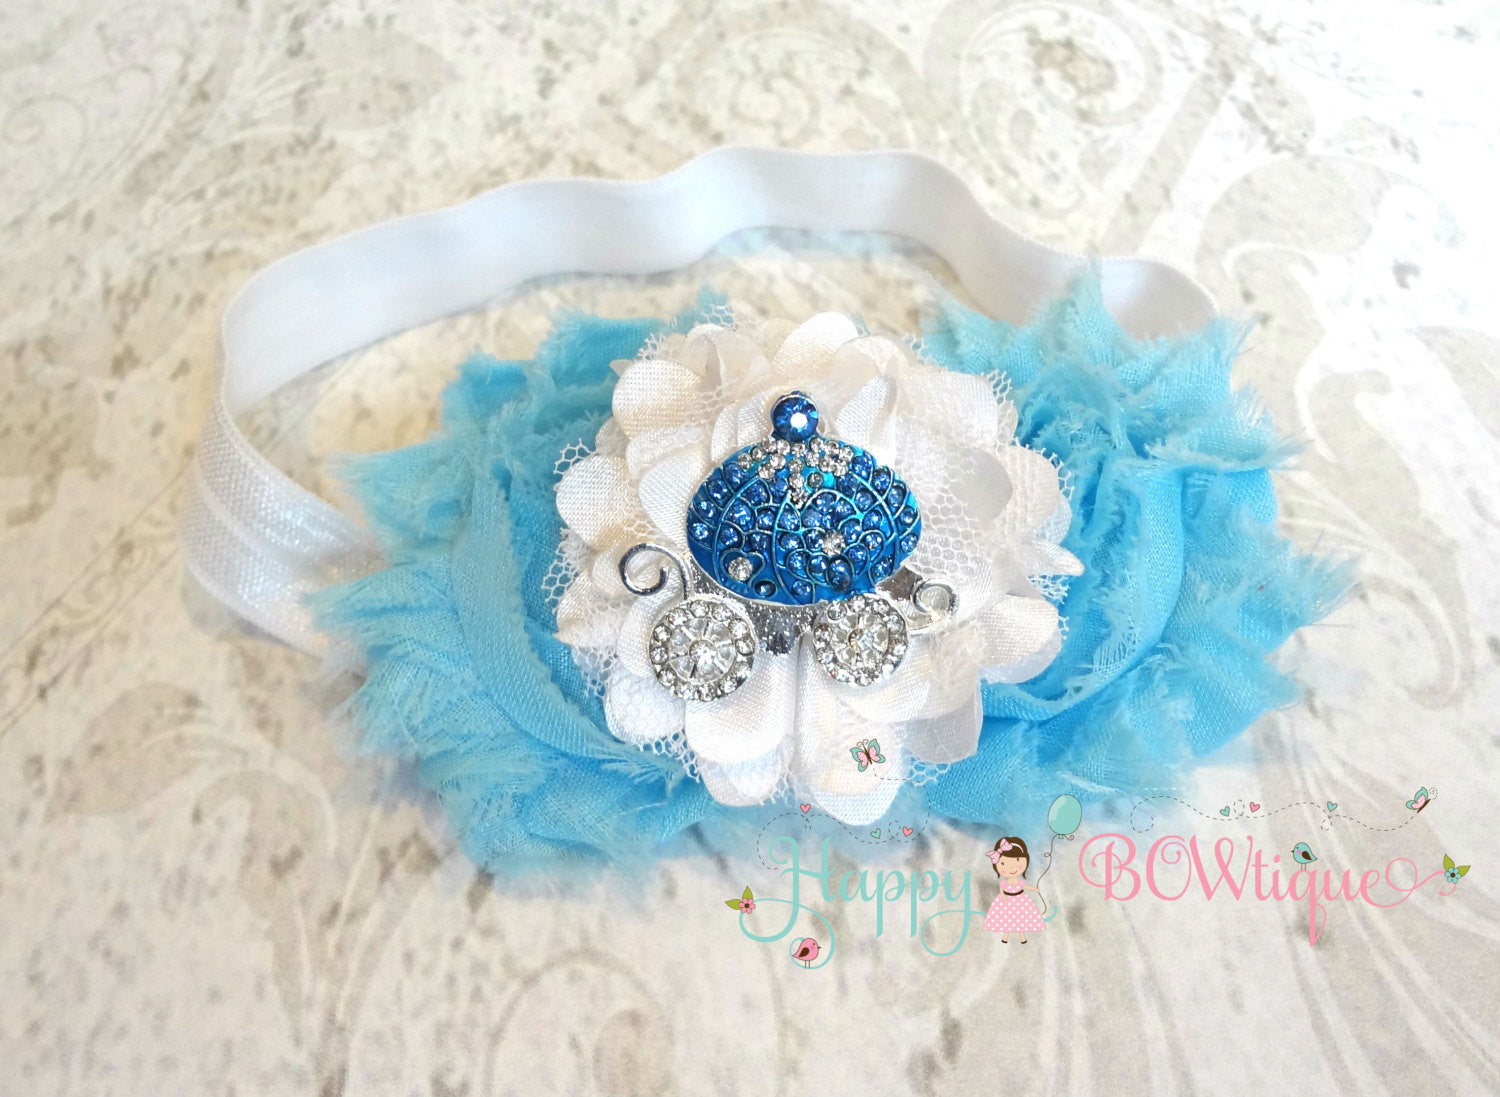 Birthday headband- Birthday #1 headband, Baby girls headband, Birthday celebration, Cake smash headband,- Happy BOWtique